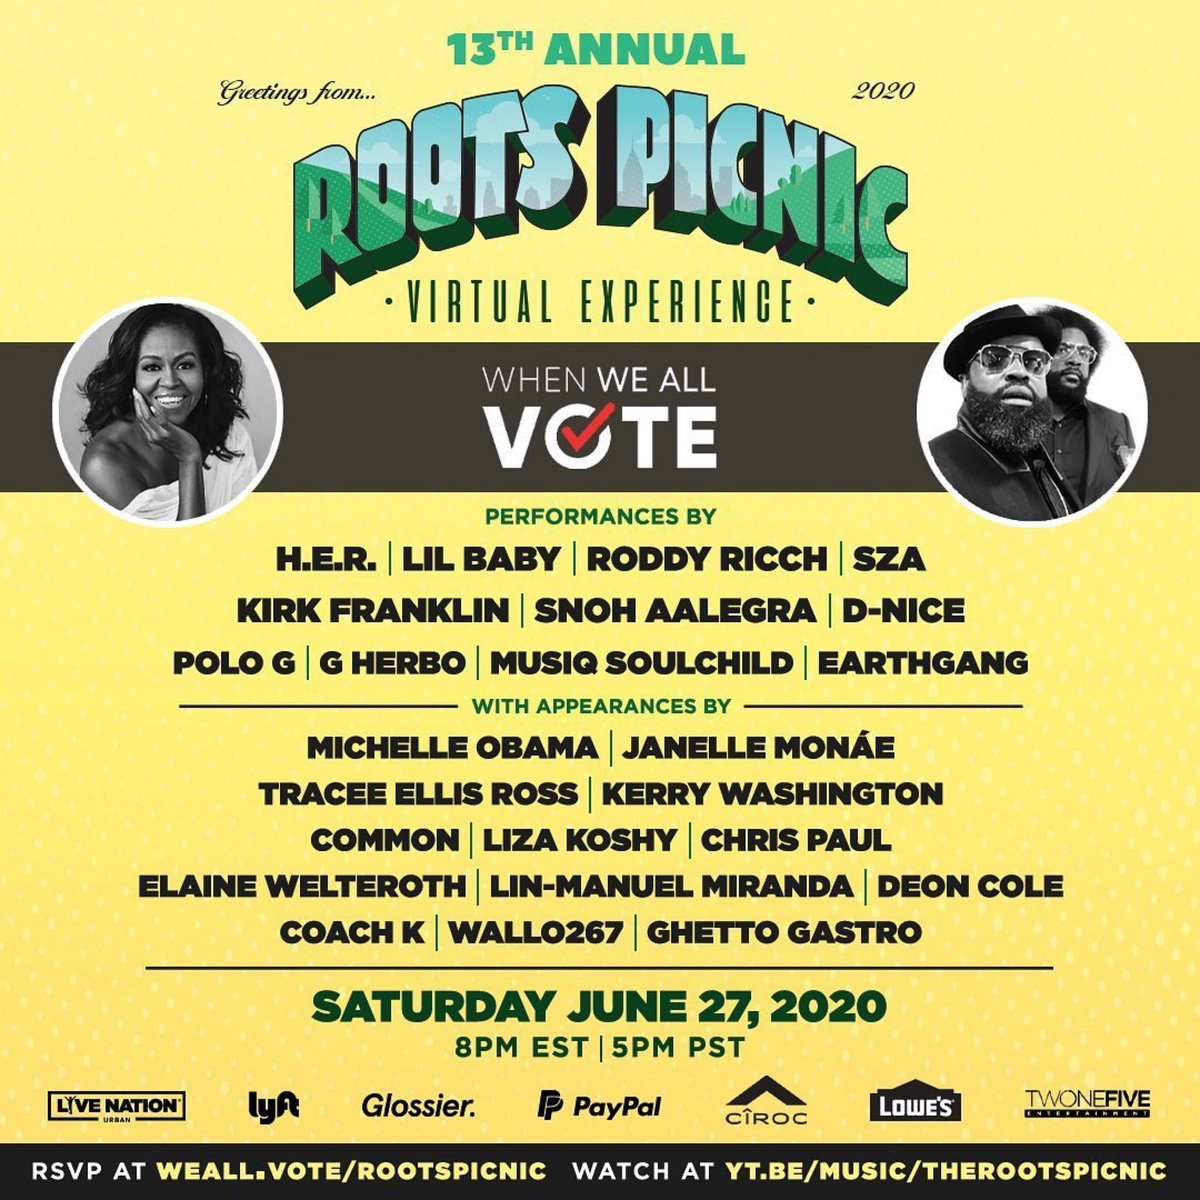 We're proud to support the @RootsPicnic Virtual Experience, this Saturday June 27 at 8 p.m. EDT/5 p.m. PDT. Learn more here: https://t.co/vYb5q116kA #RootsPicnic